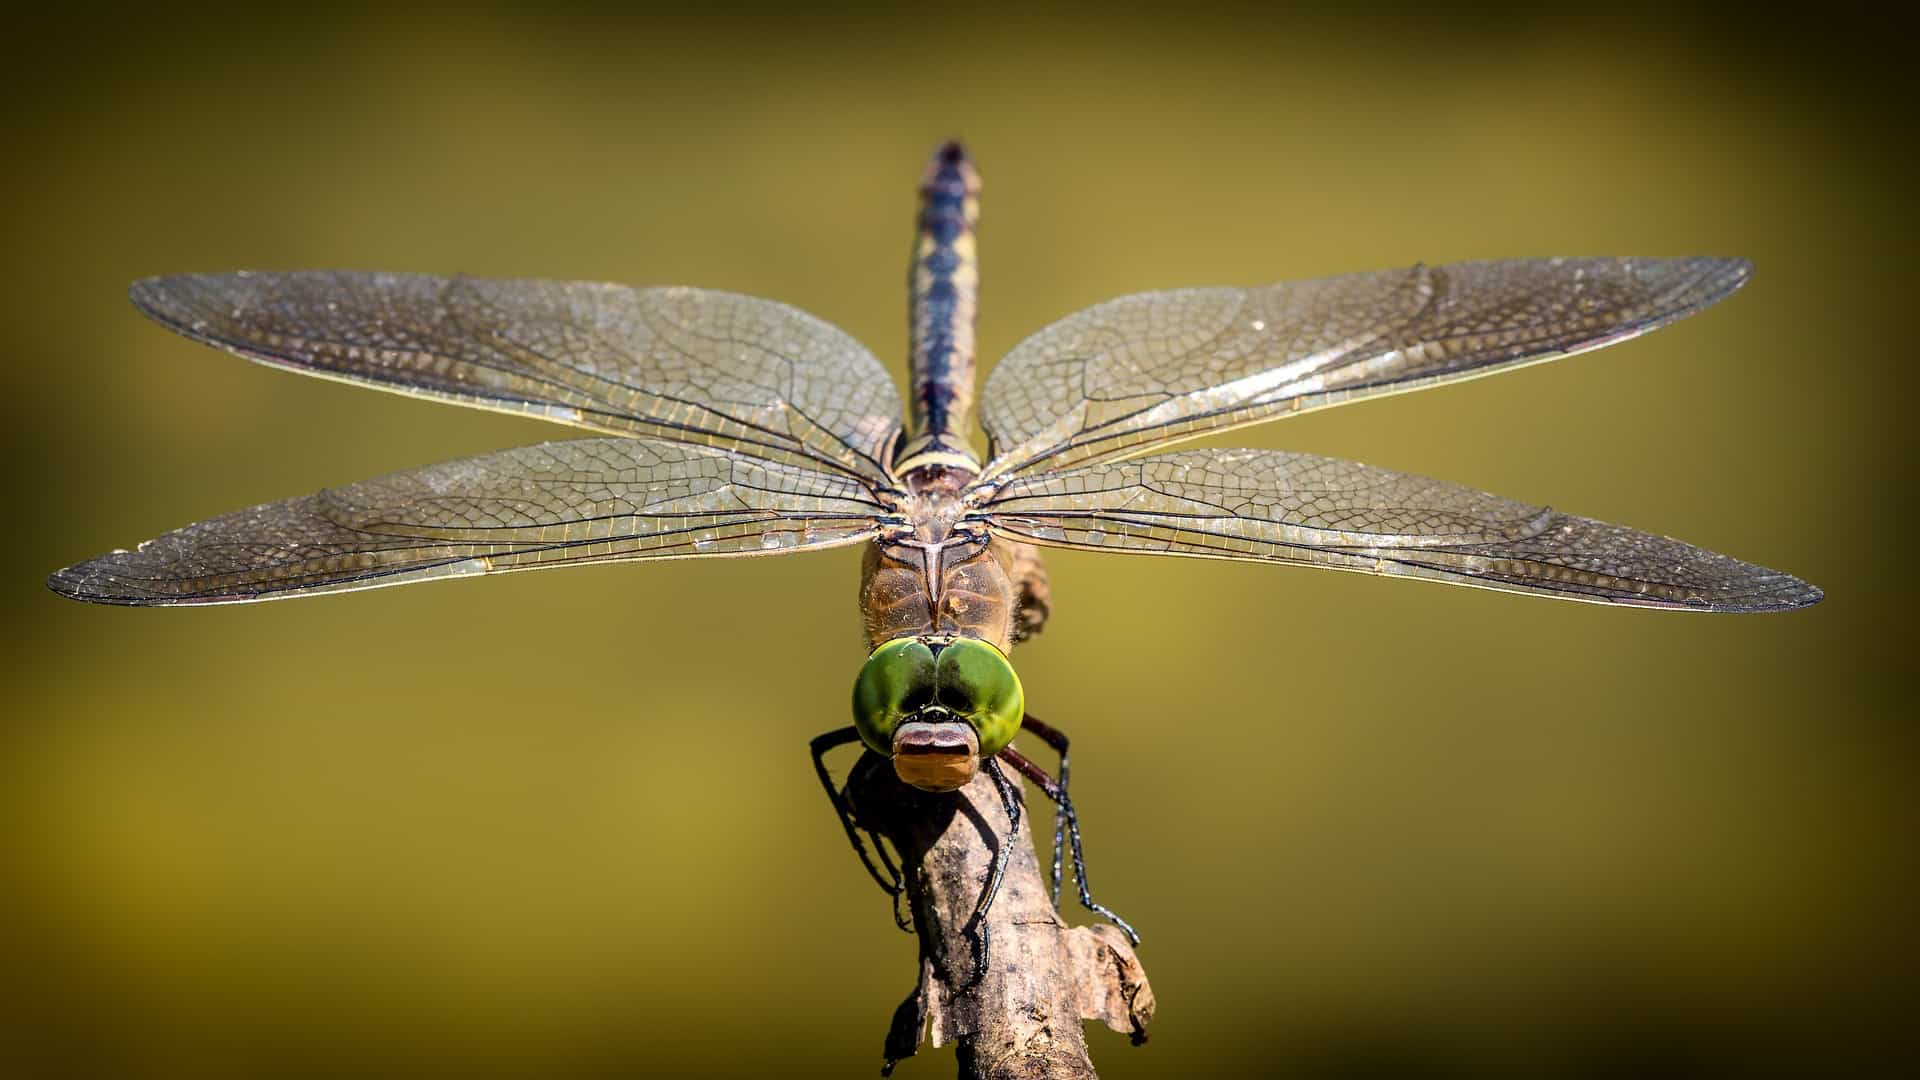 The Origin Of Wings: An Article On Insect Evolution